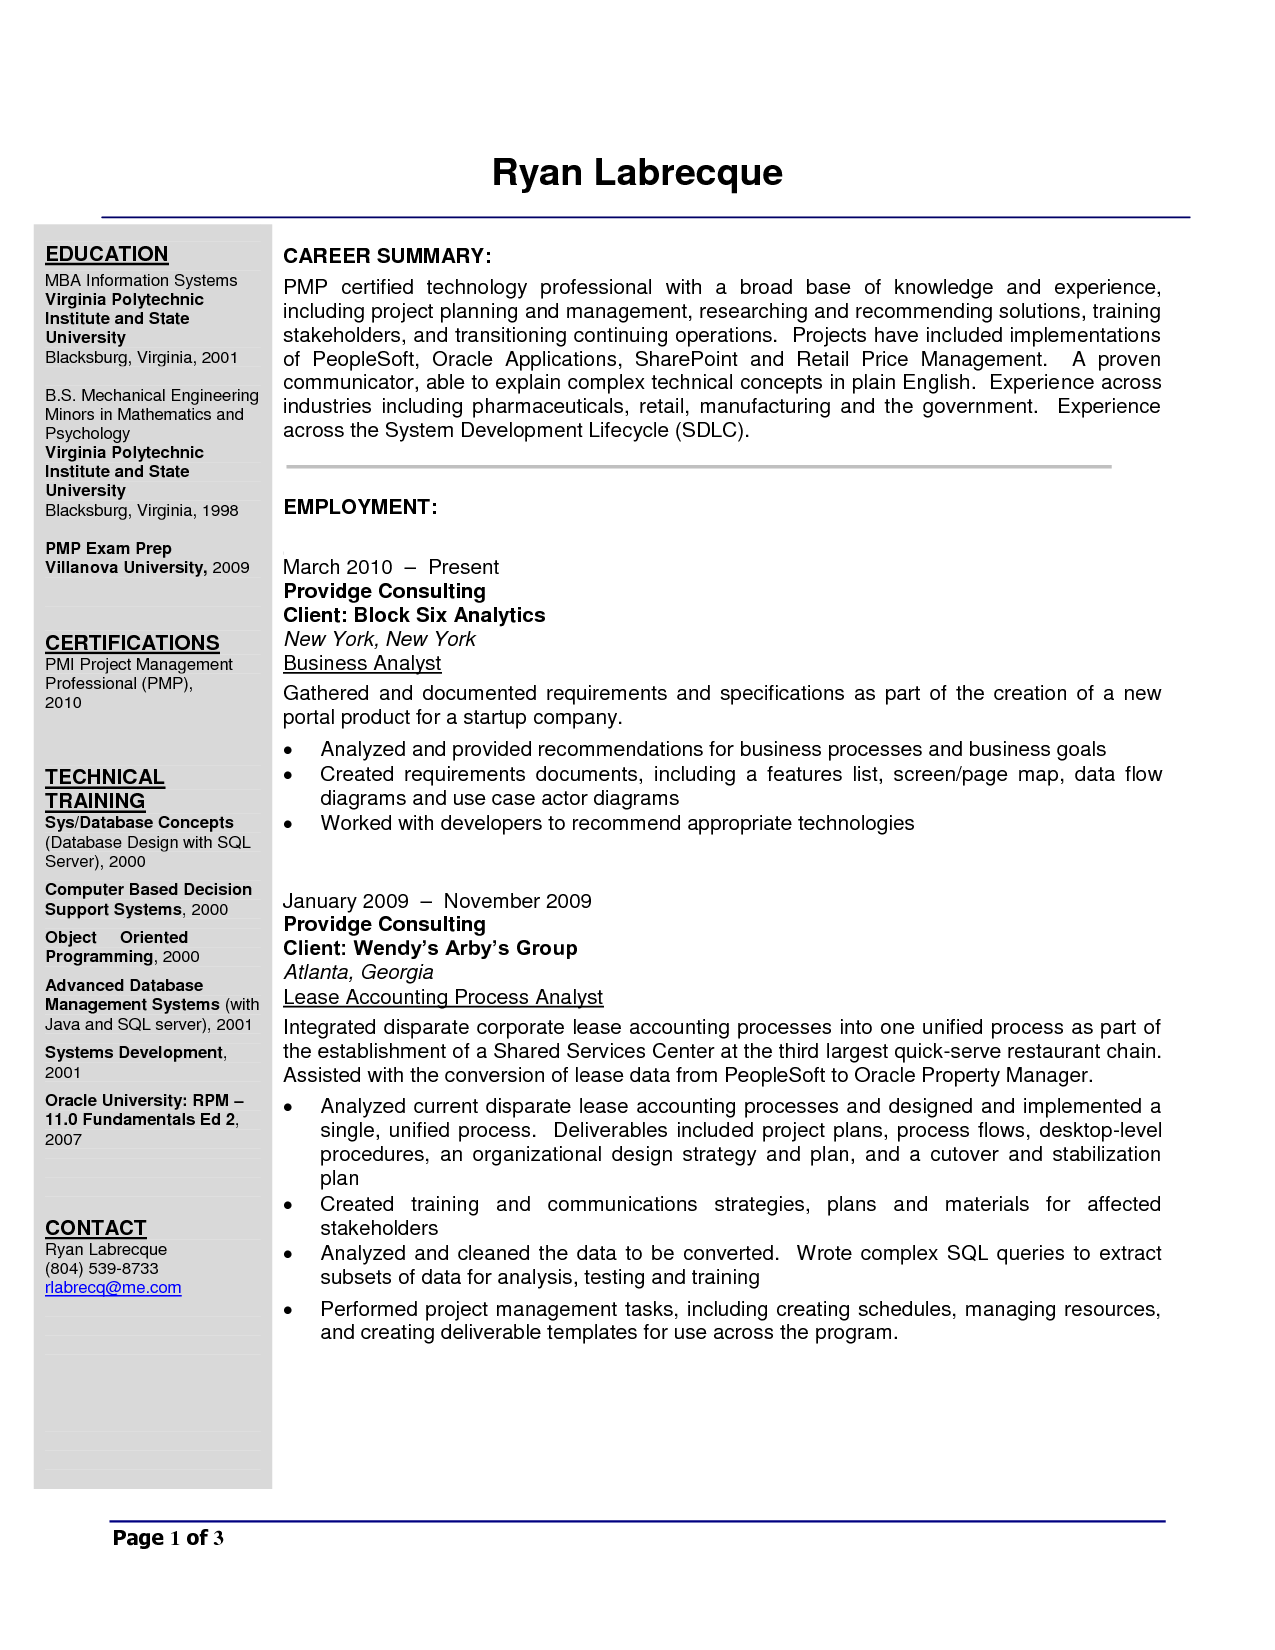 business analyst resume business analyst resume templates business analyst resume sample doc by ryan labrecque